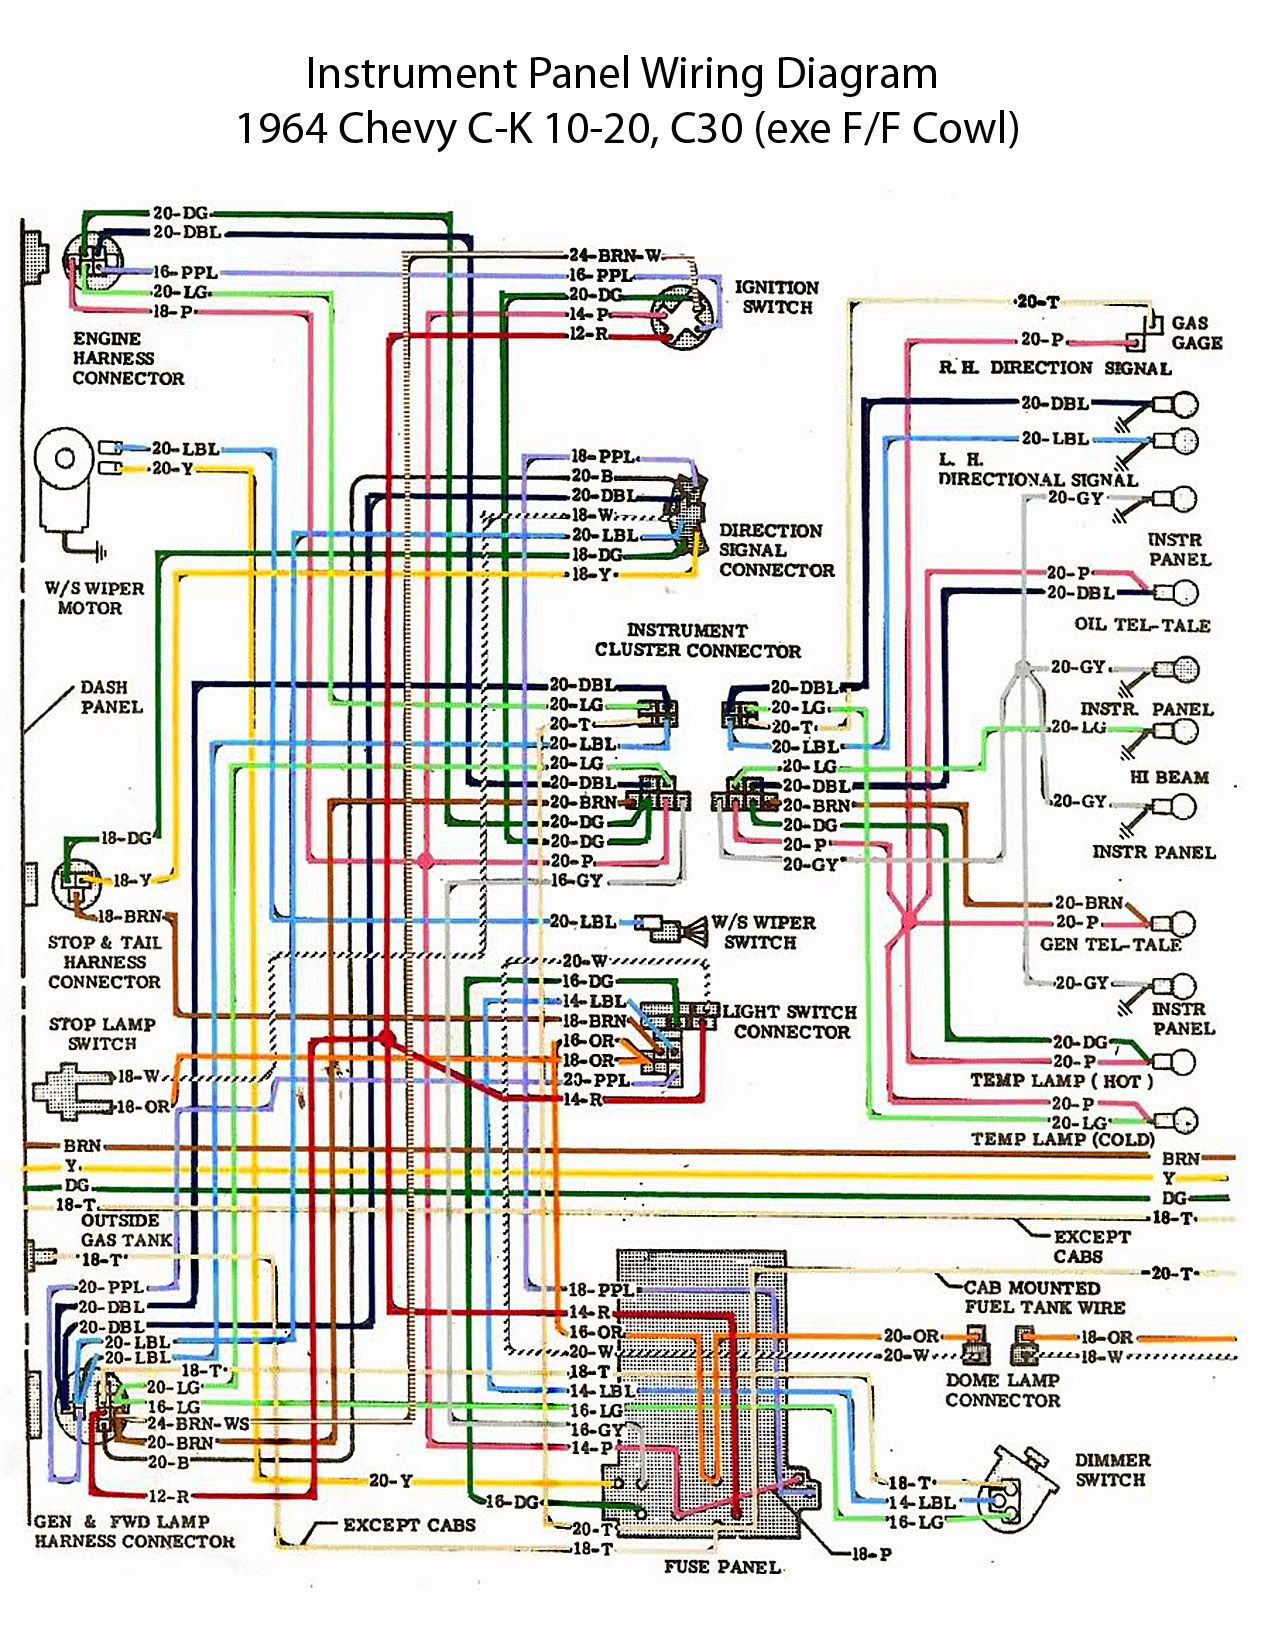 Phenomenal Wiring Diagram Mitsubishi Kuda Wiring Diagrams Lol Wiring Digital Resources Sapredefiancerspsorg